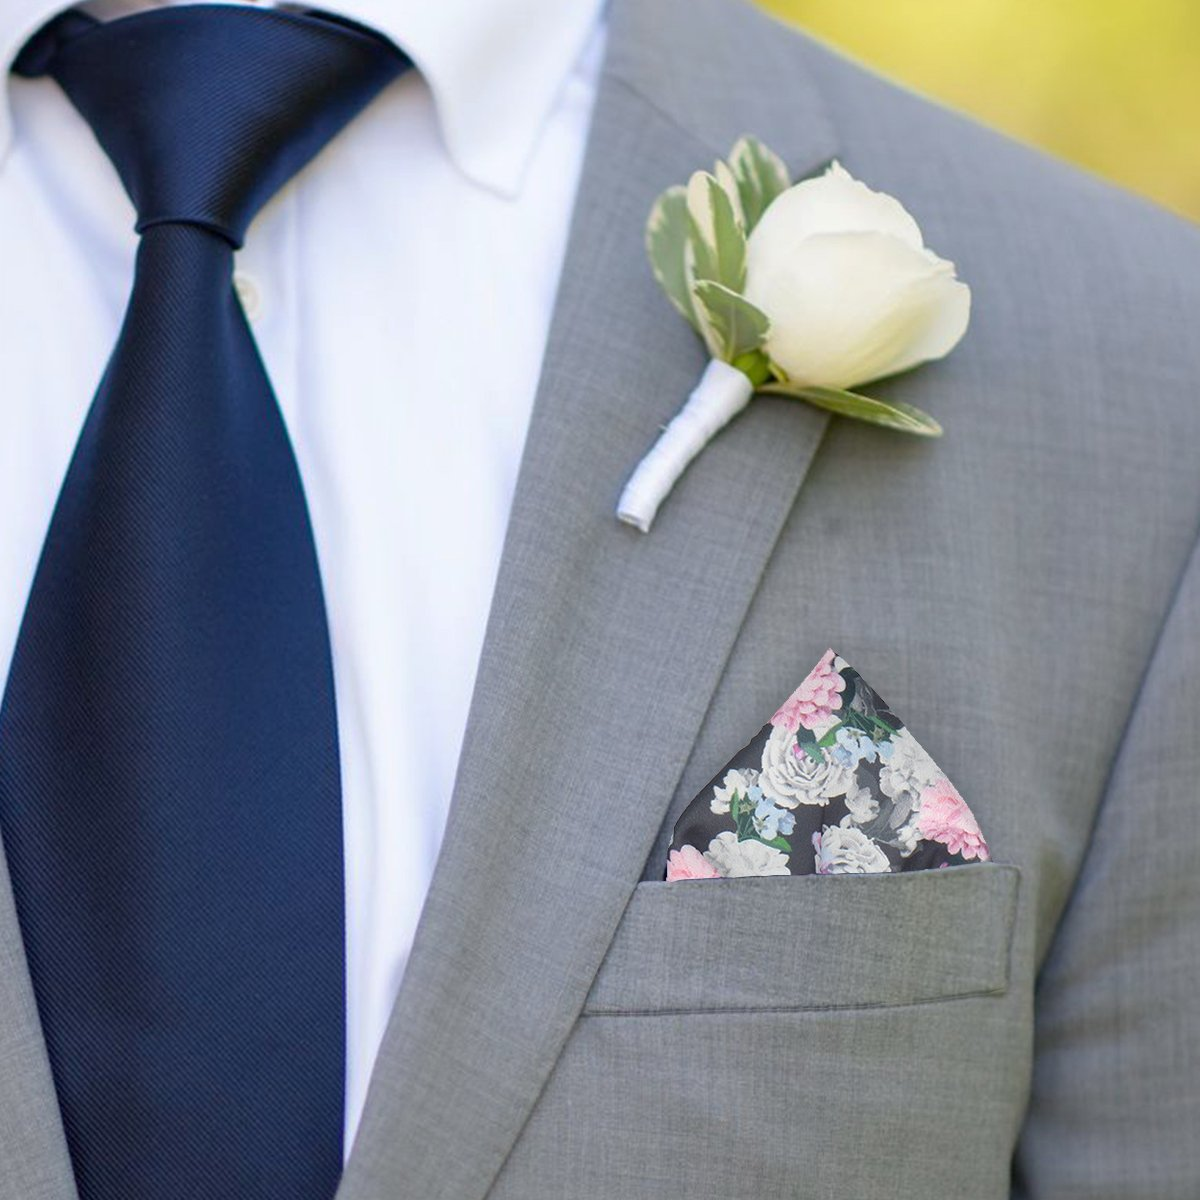 Rosemoor in Multi Pocket Square